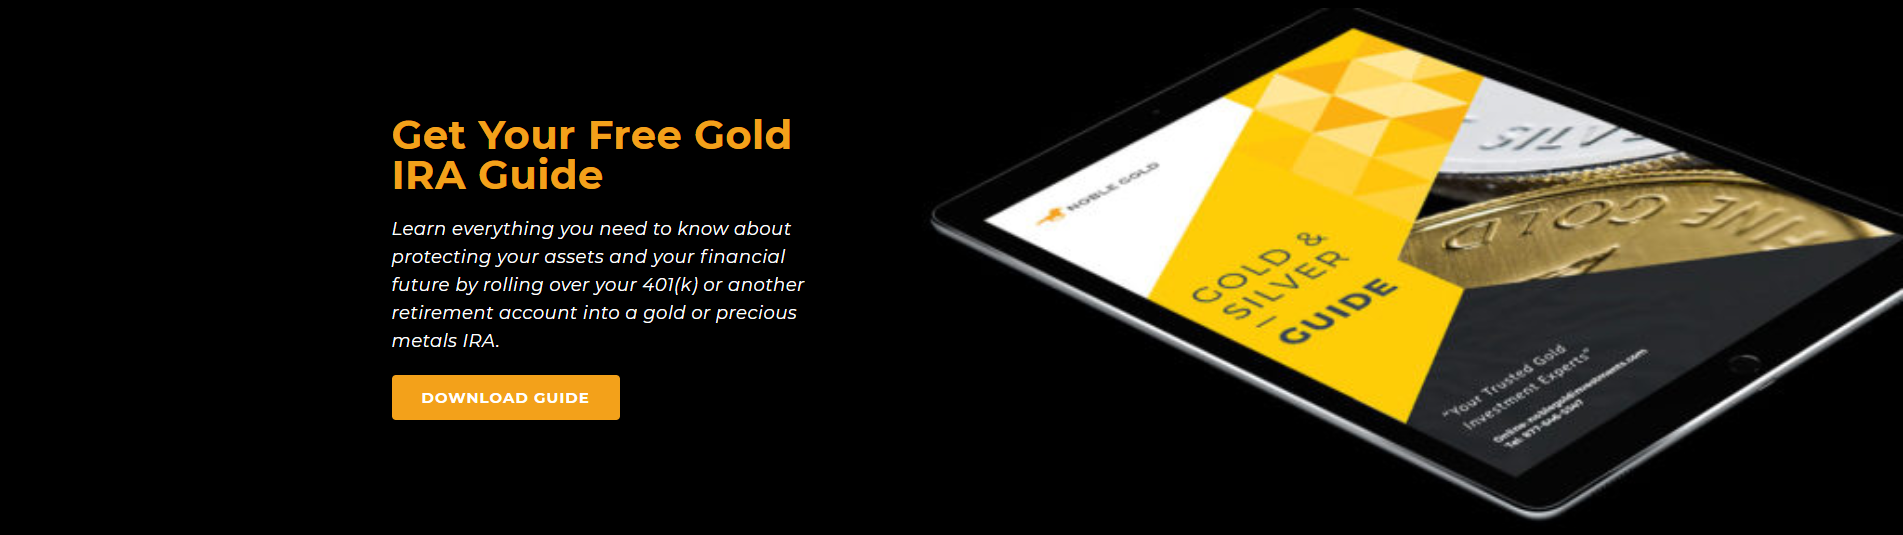 Noble Gold Review Free Gold IRA Guide